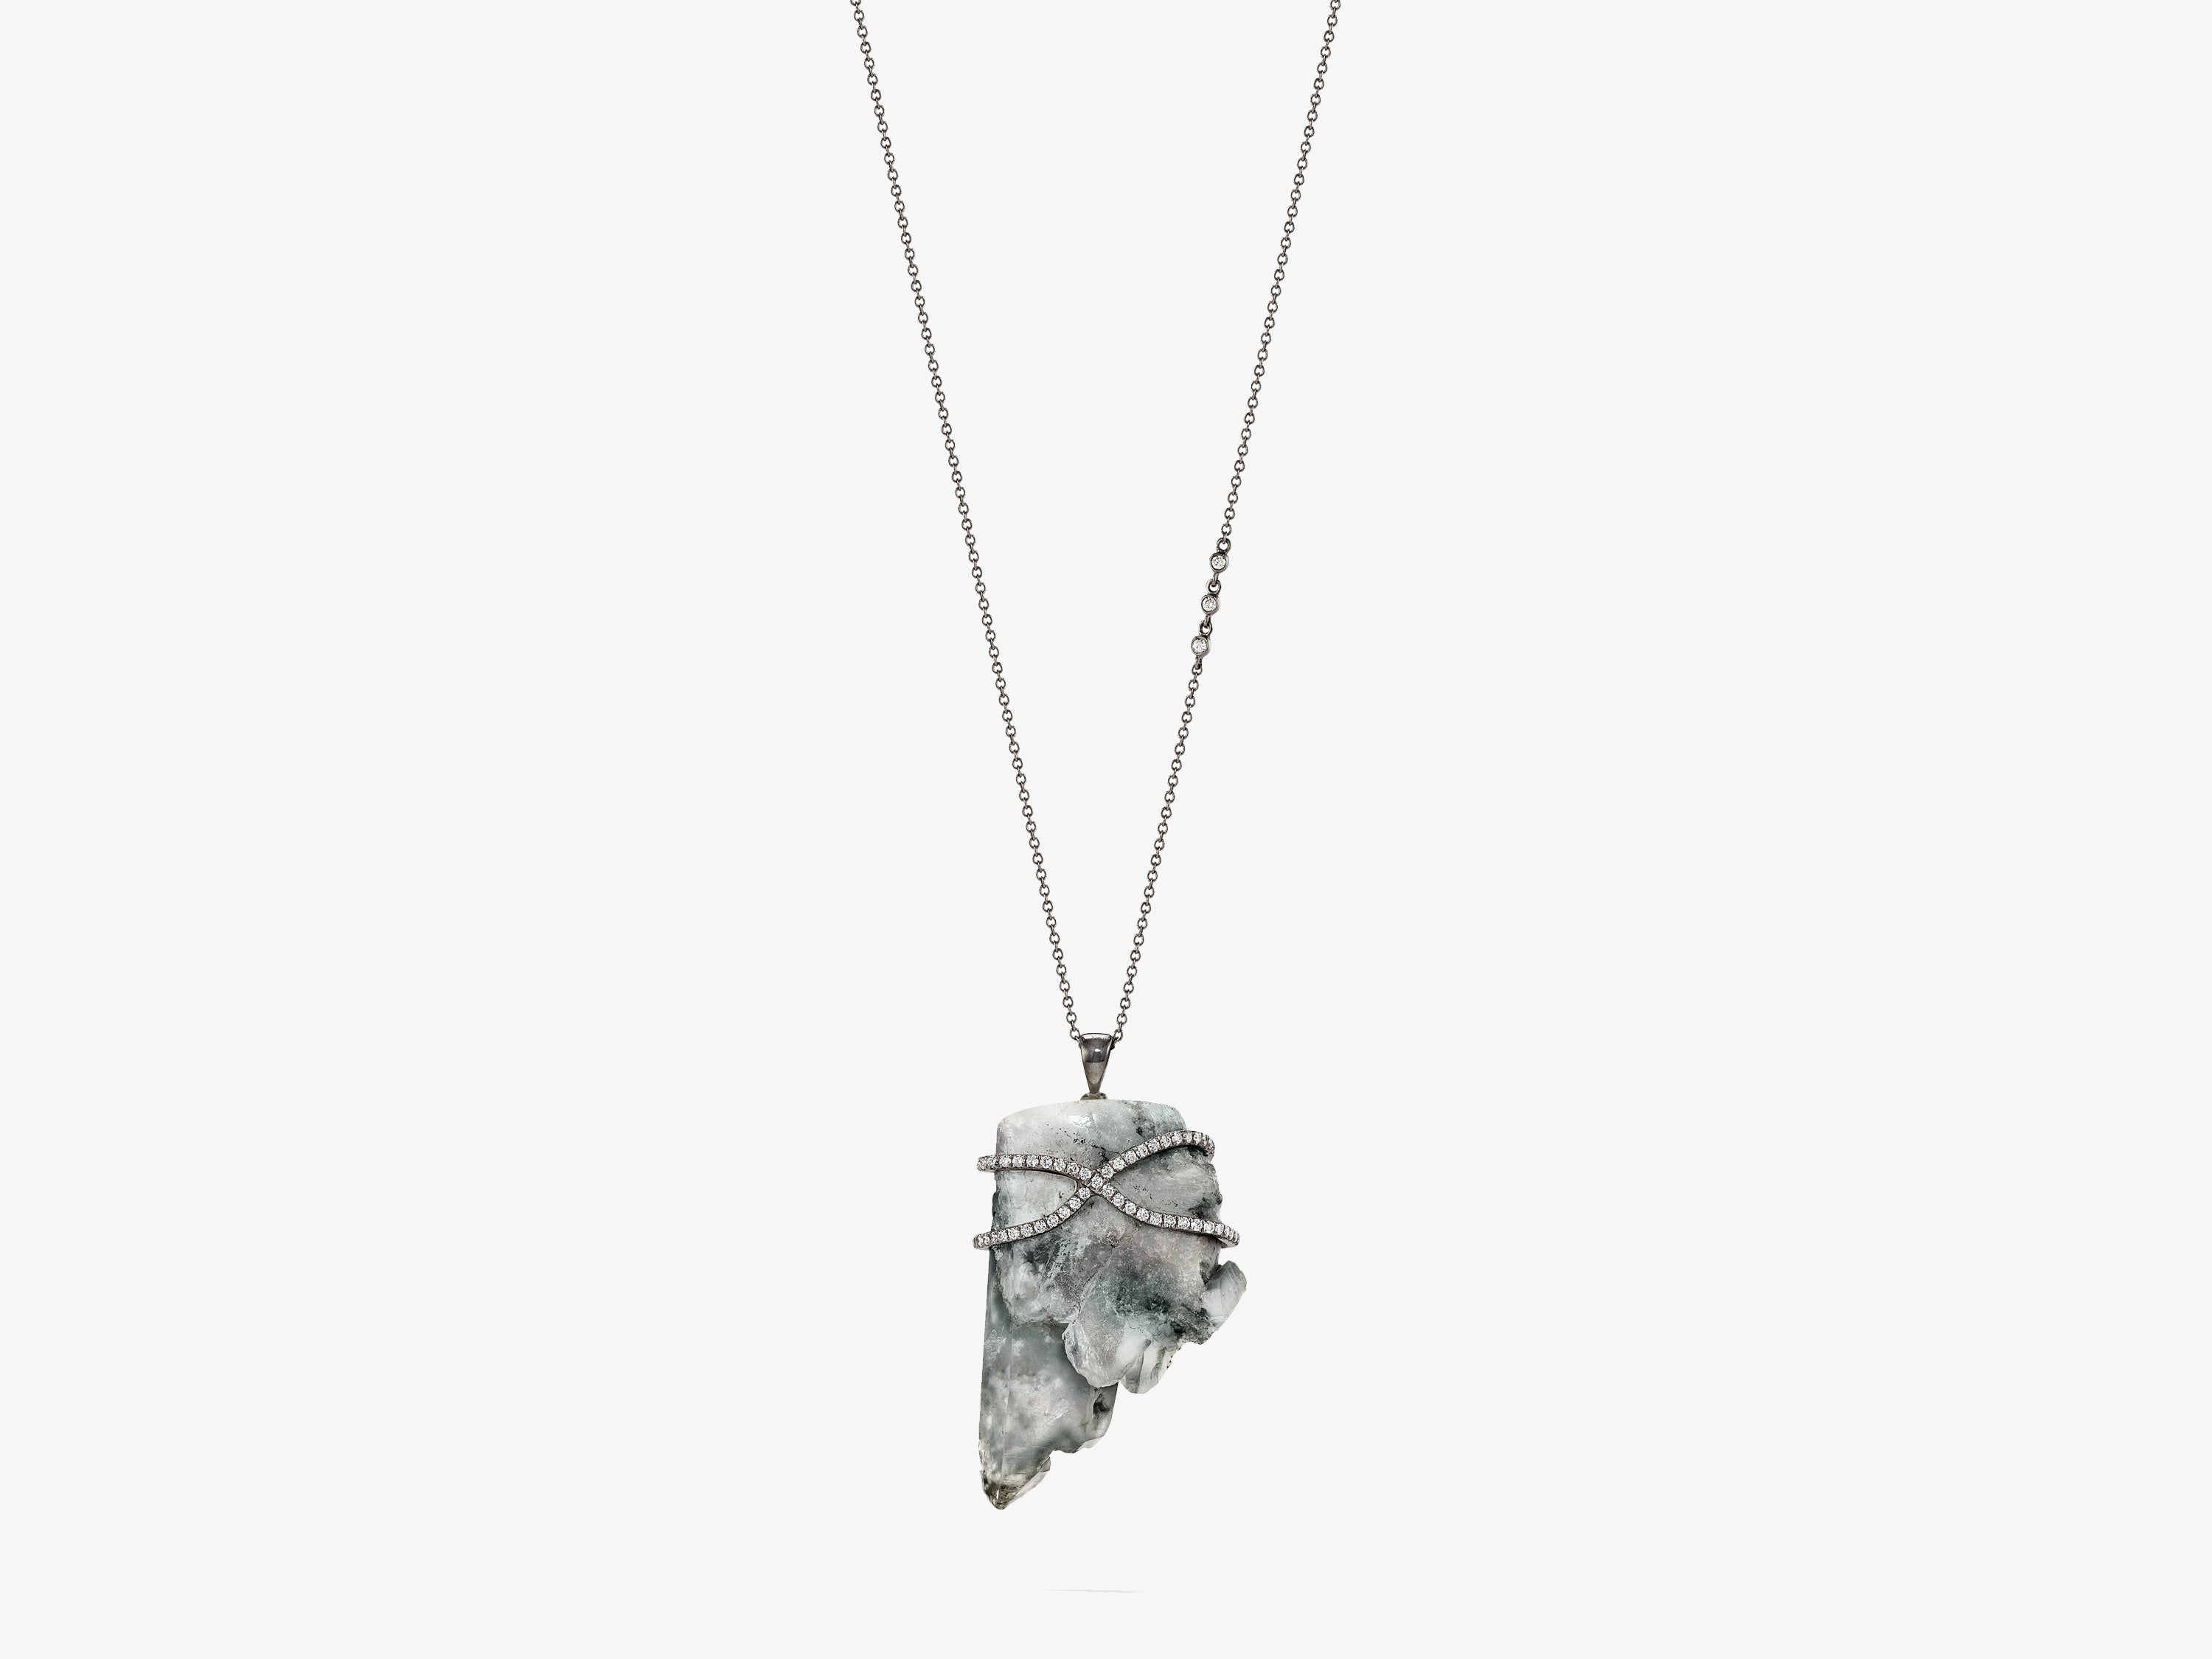 Edenite Quartz Rapture Necklace